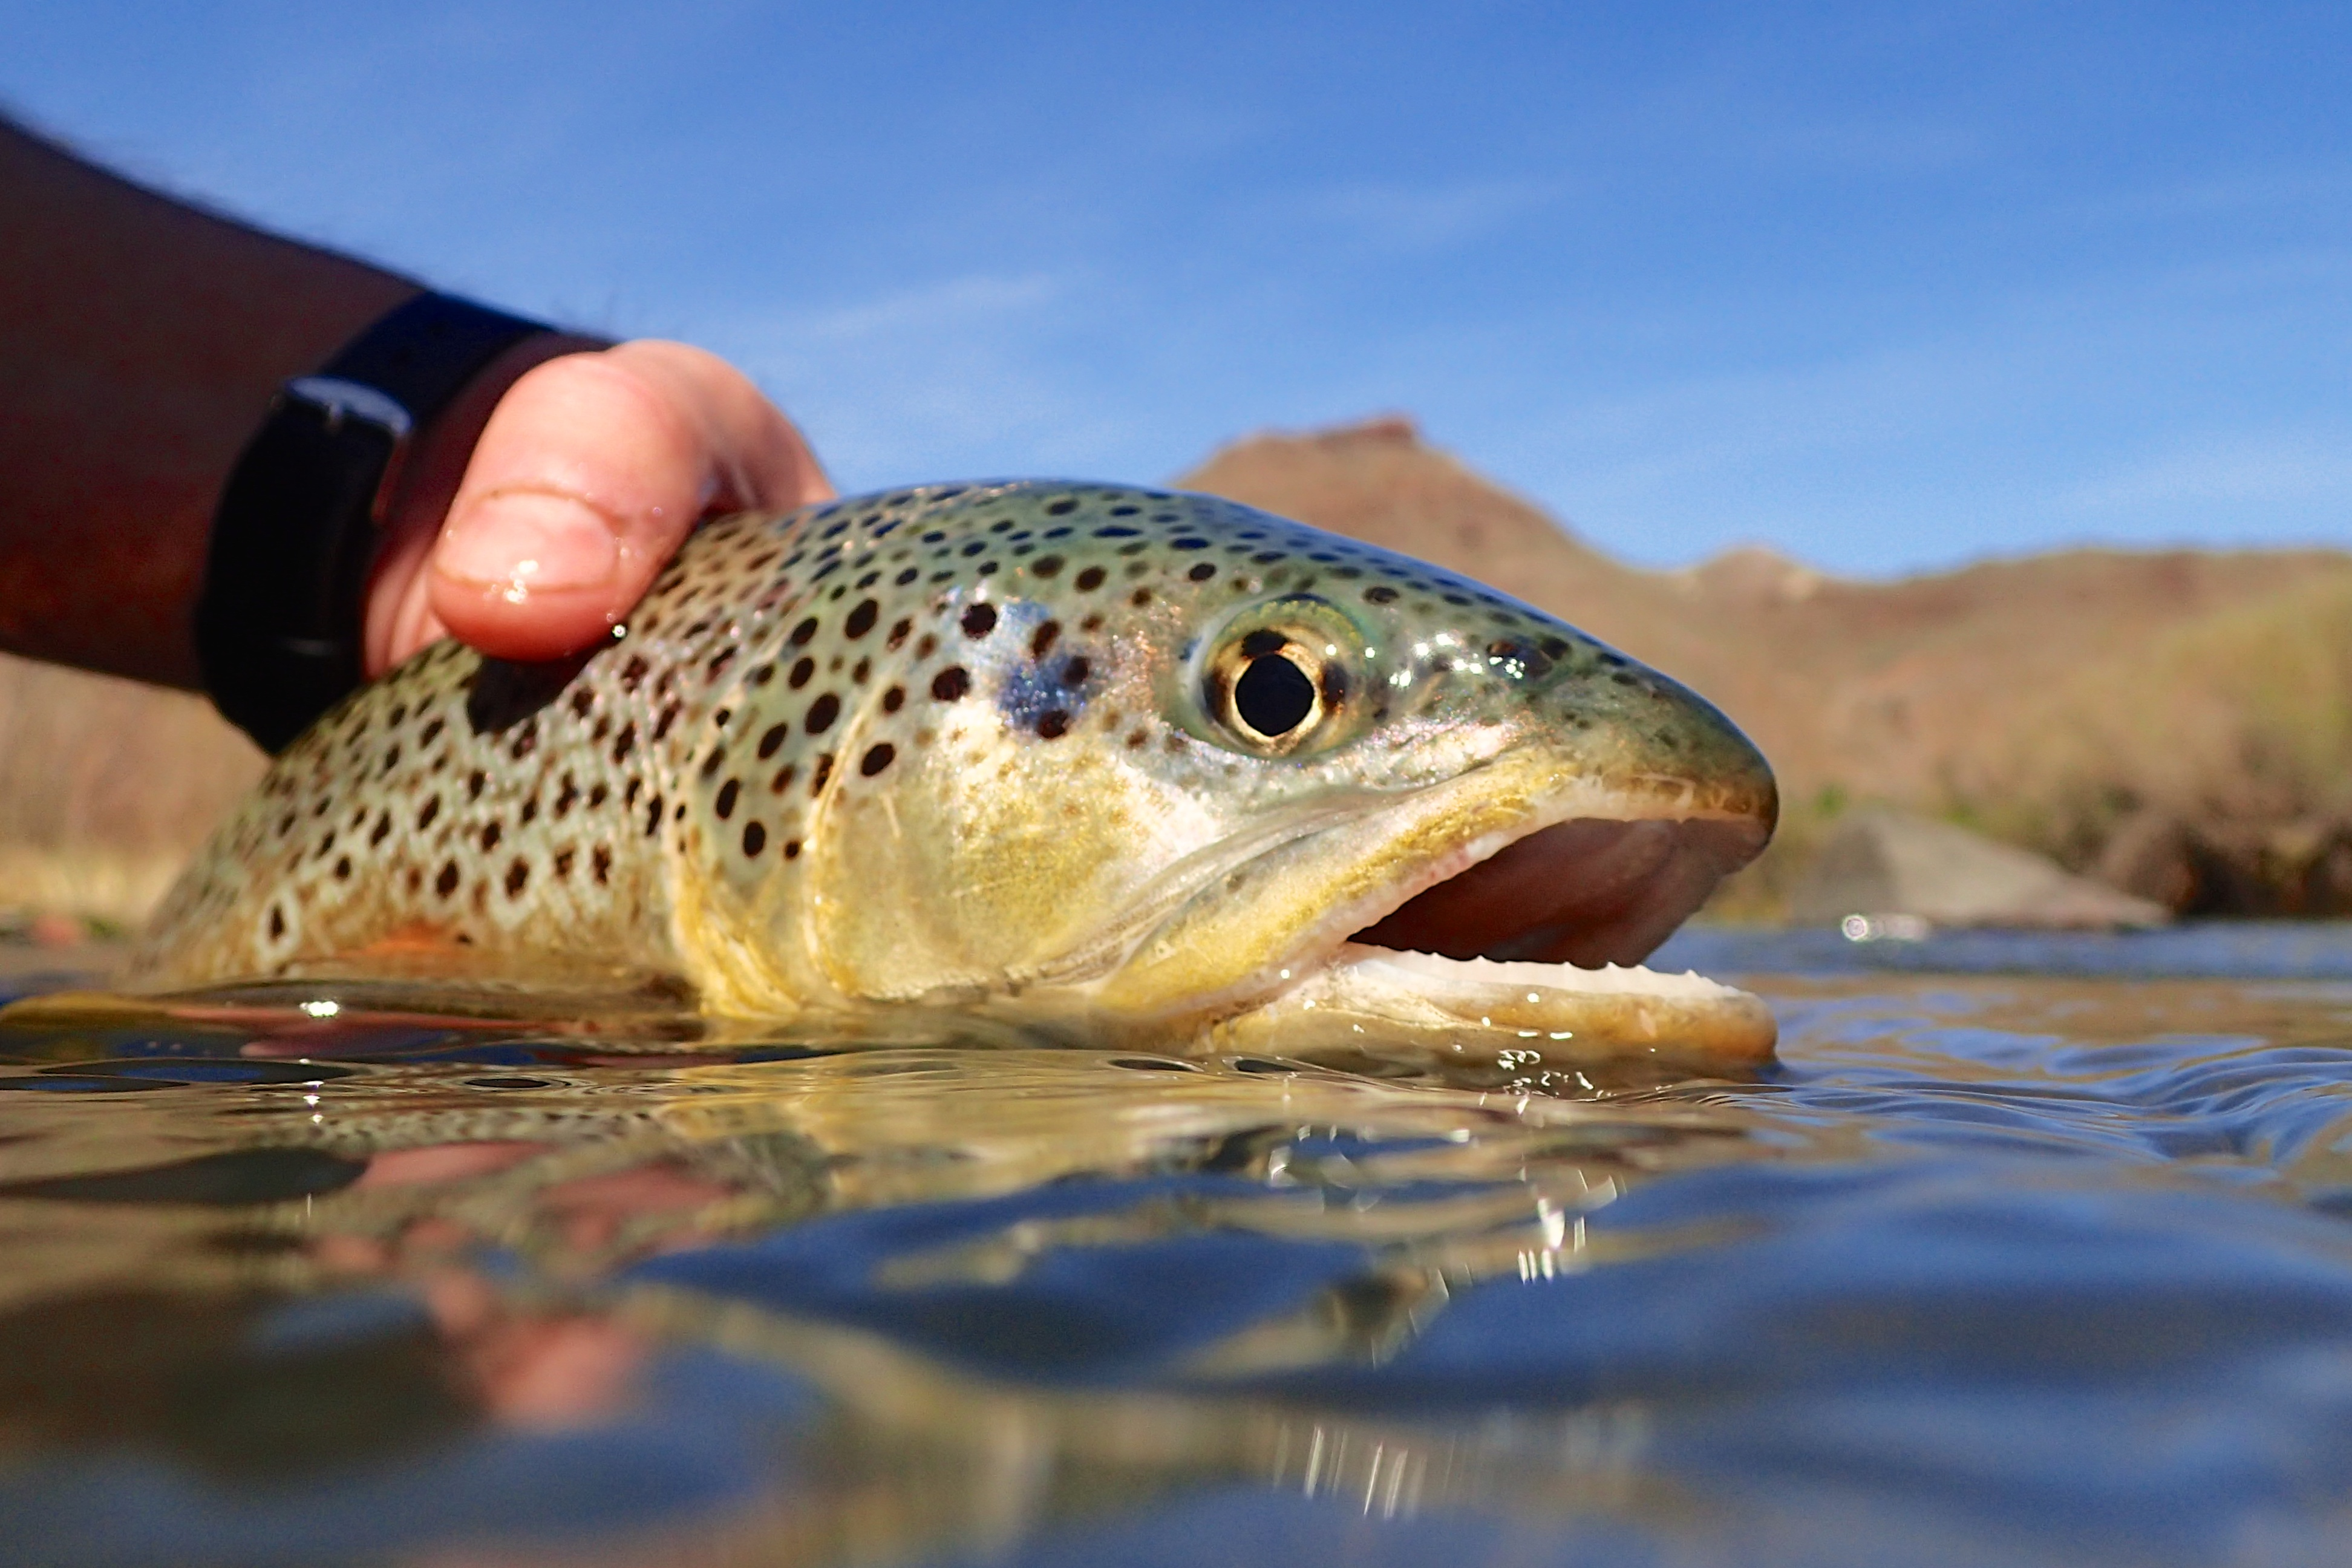 A man grips a huge brown trout